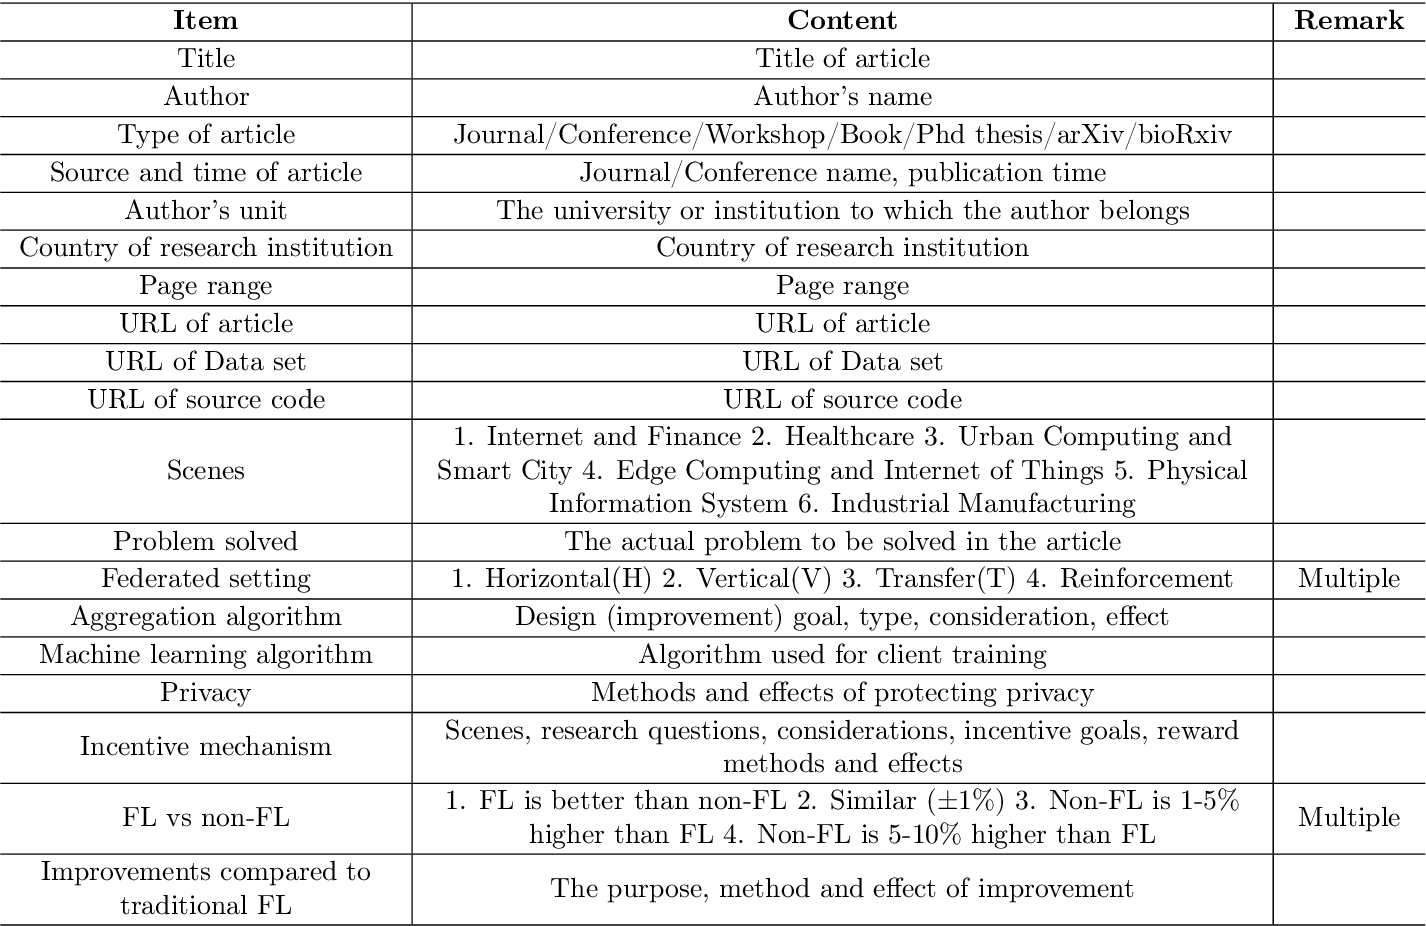 Figure 3 for A Systematic Literature Review on Federated Learning: From A Model Quality Perspective